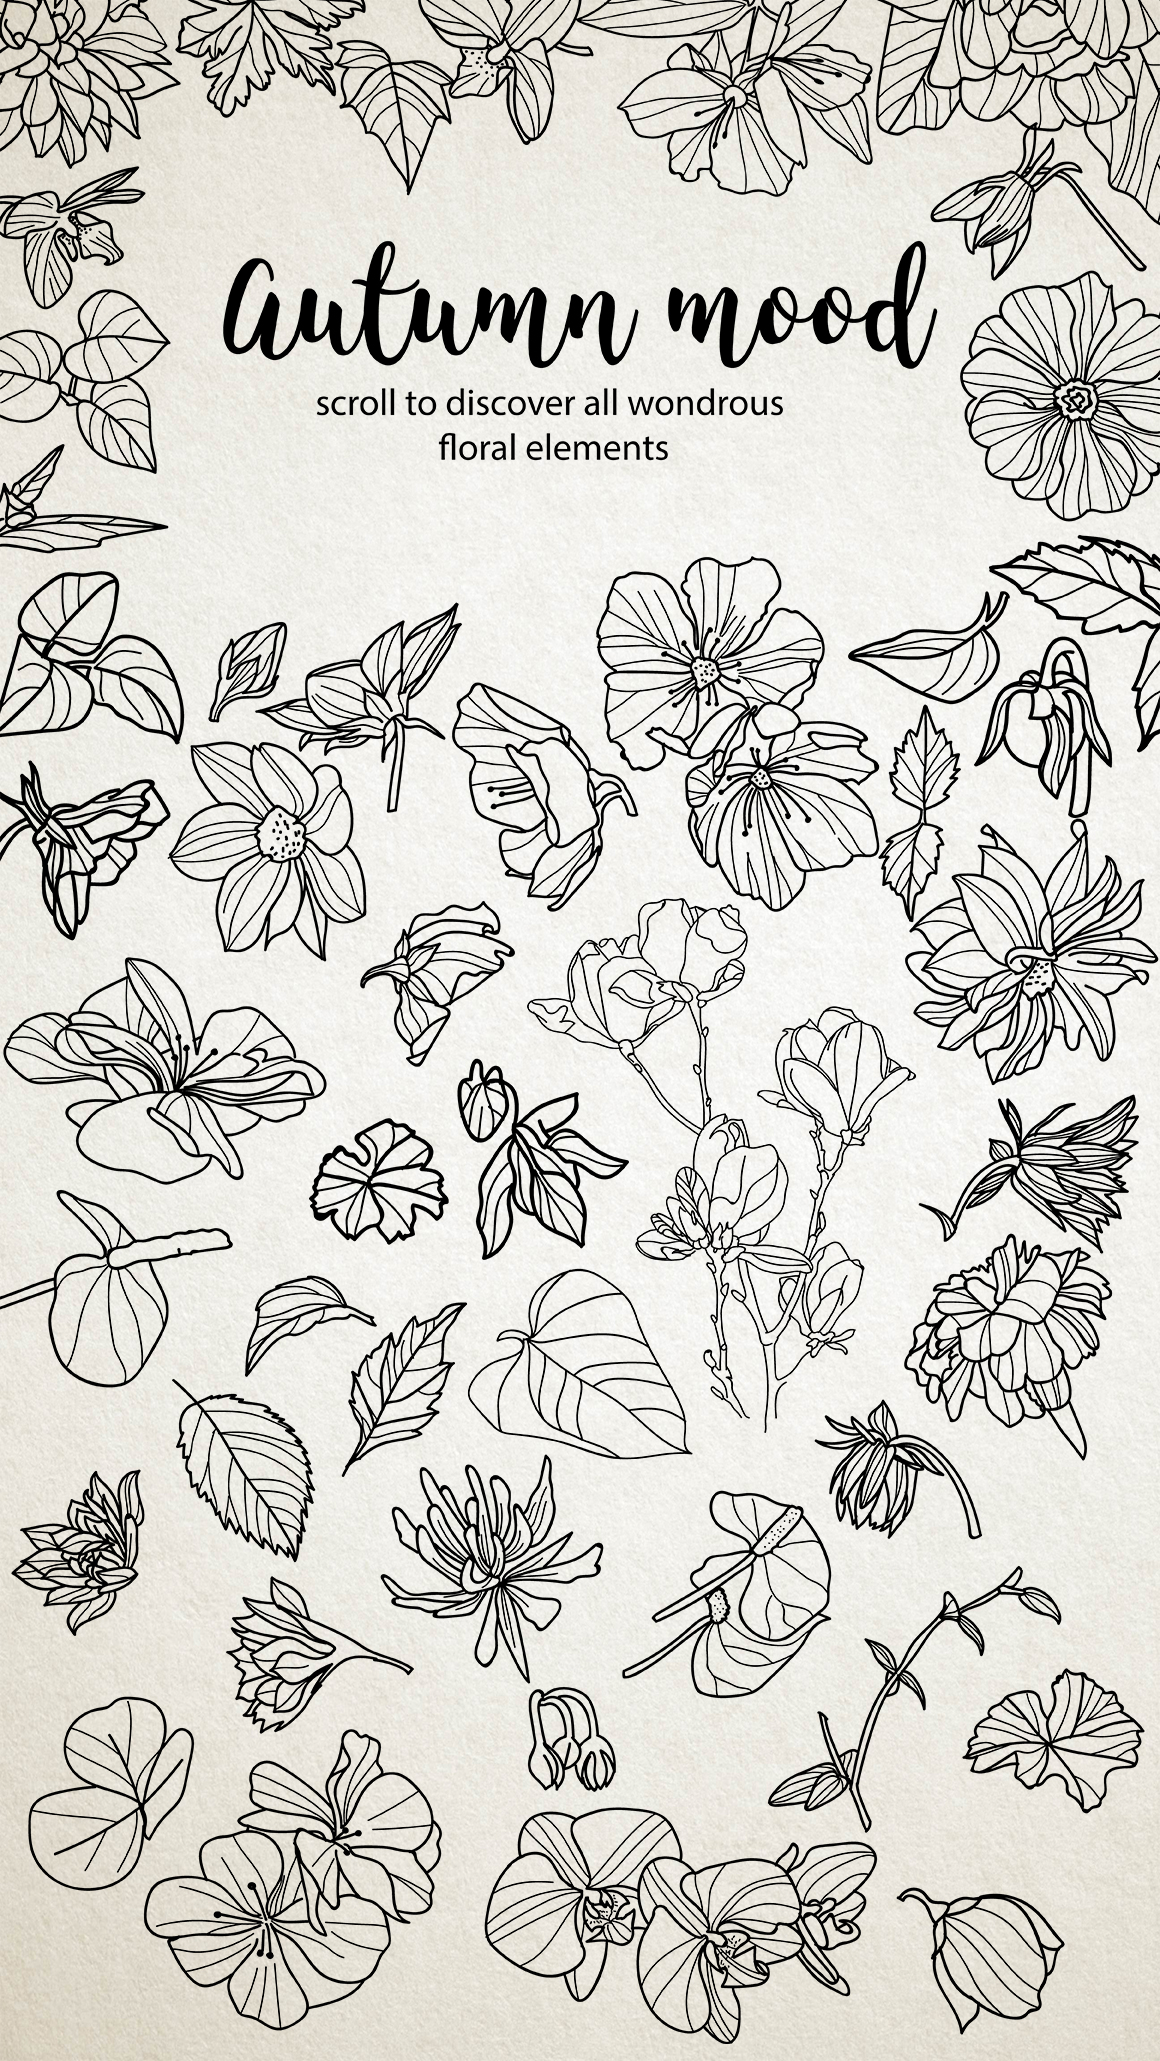 50 hand drawn floral elements example image 2